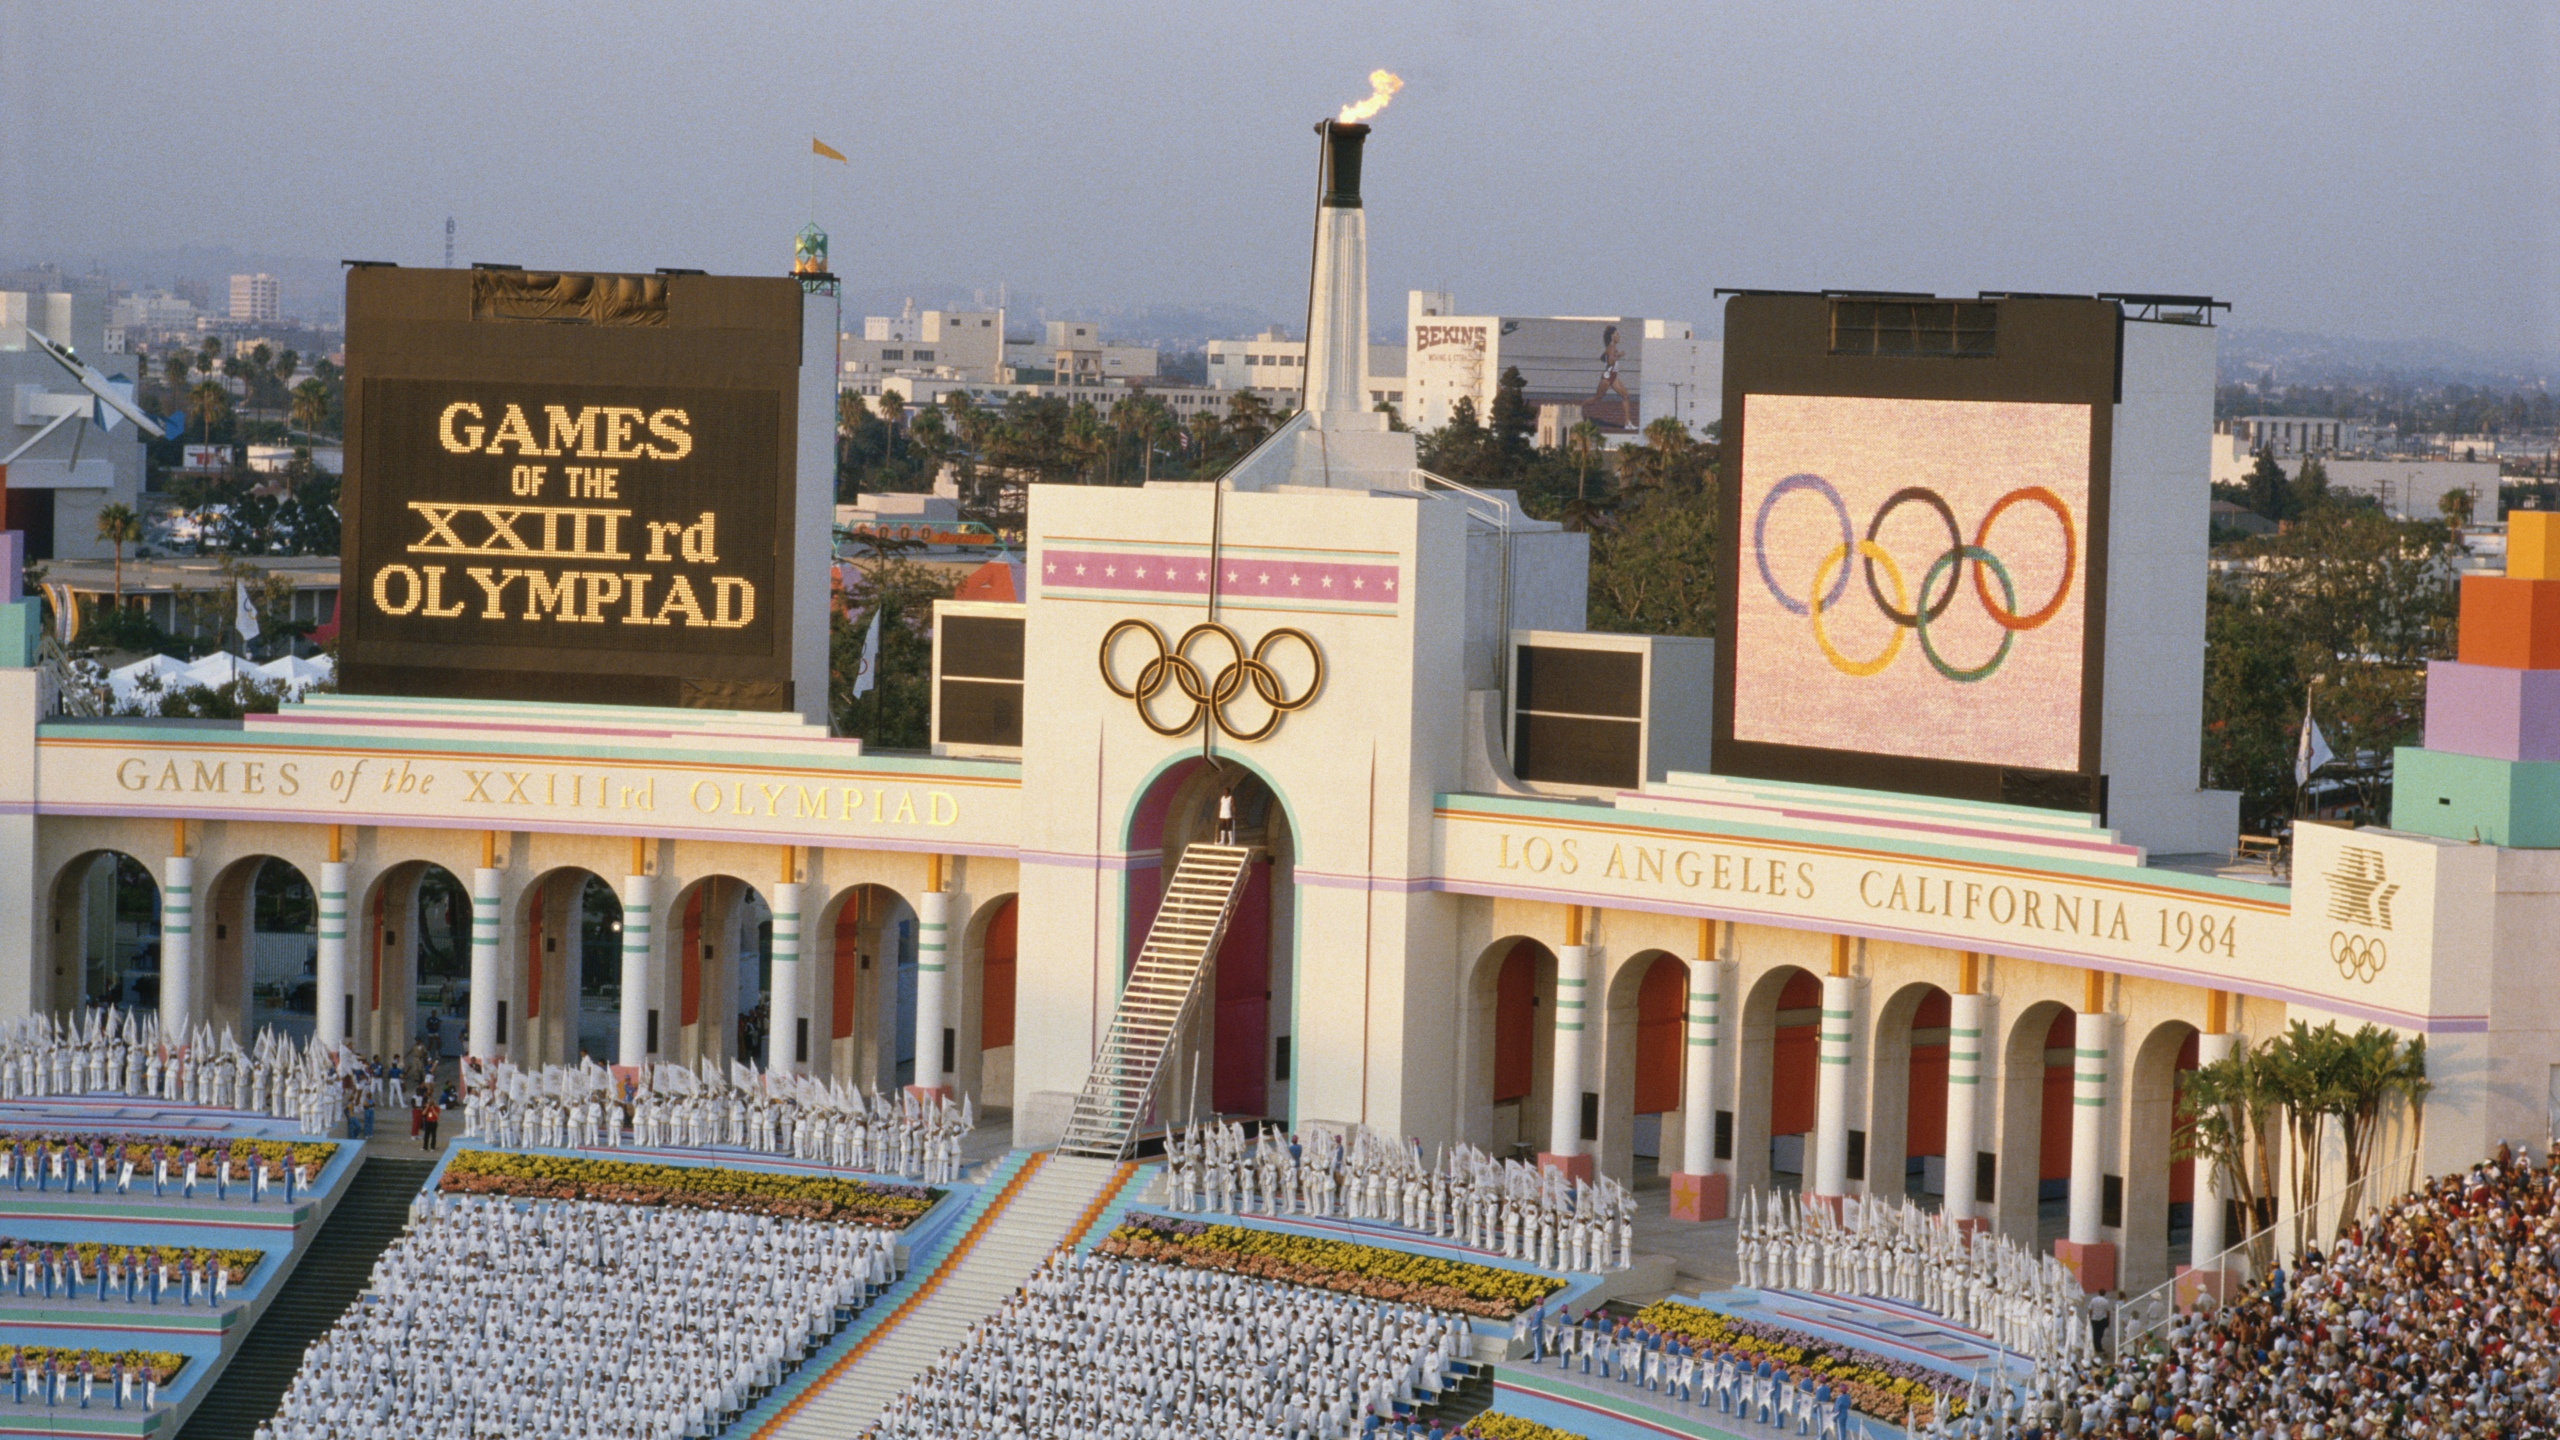 An overview of the opening ceremony at the Los Angeles Coliseum during the lighting of the Olympic flame of the 1984 Summer Olympics. (Credit: Getty Images)